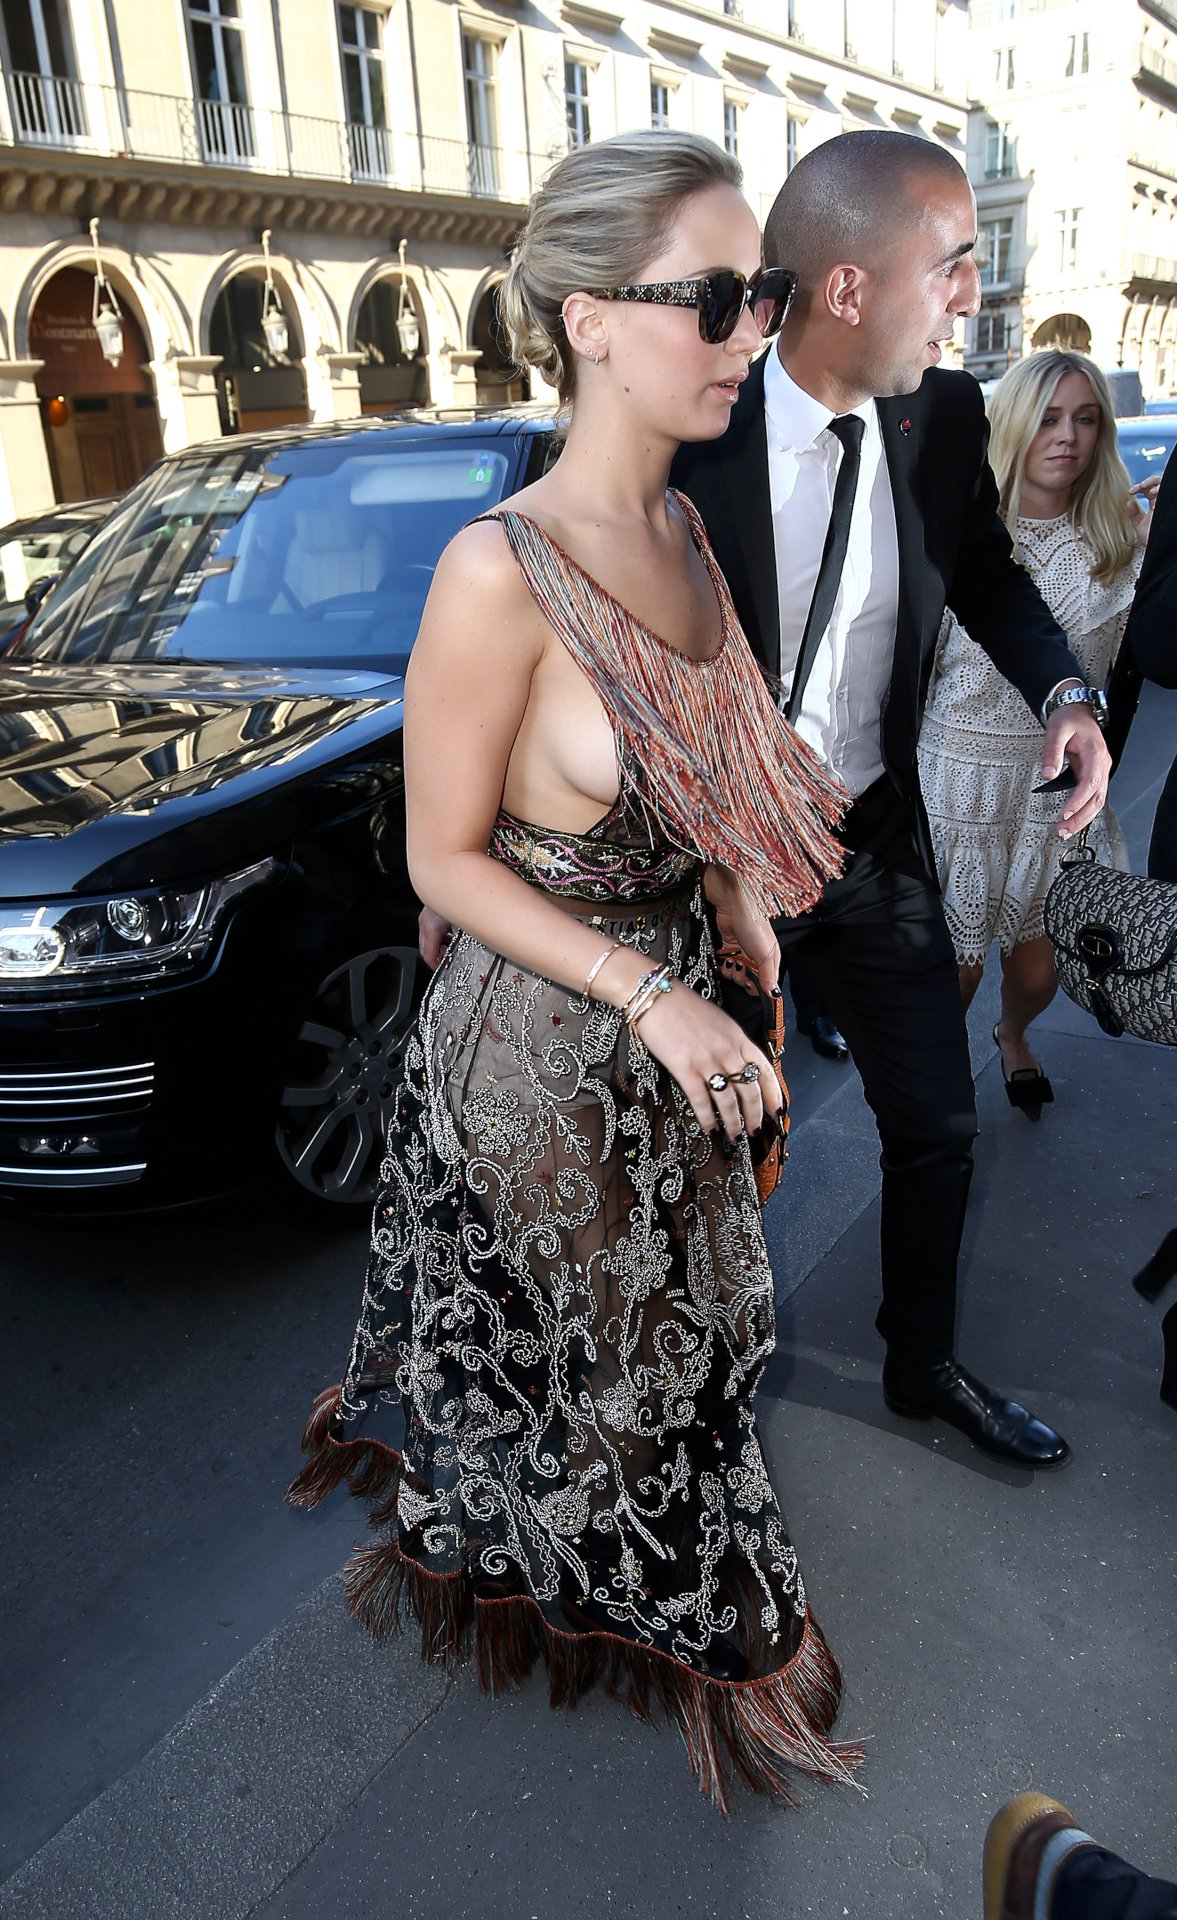 Jennifer Lawrence Sports Sideboob and Boxers While out in Paris